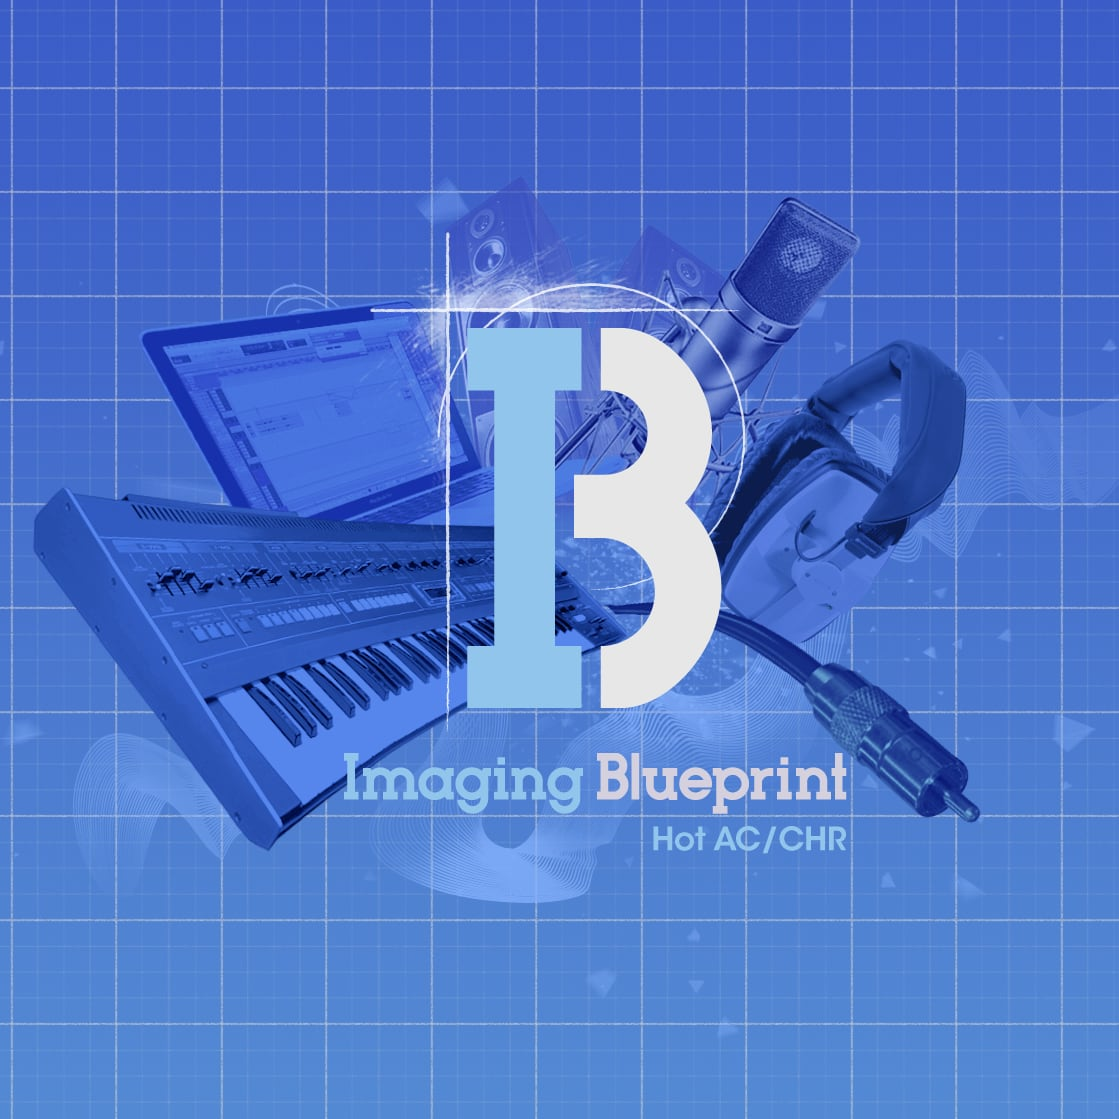 imaging blueprint imaging library